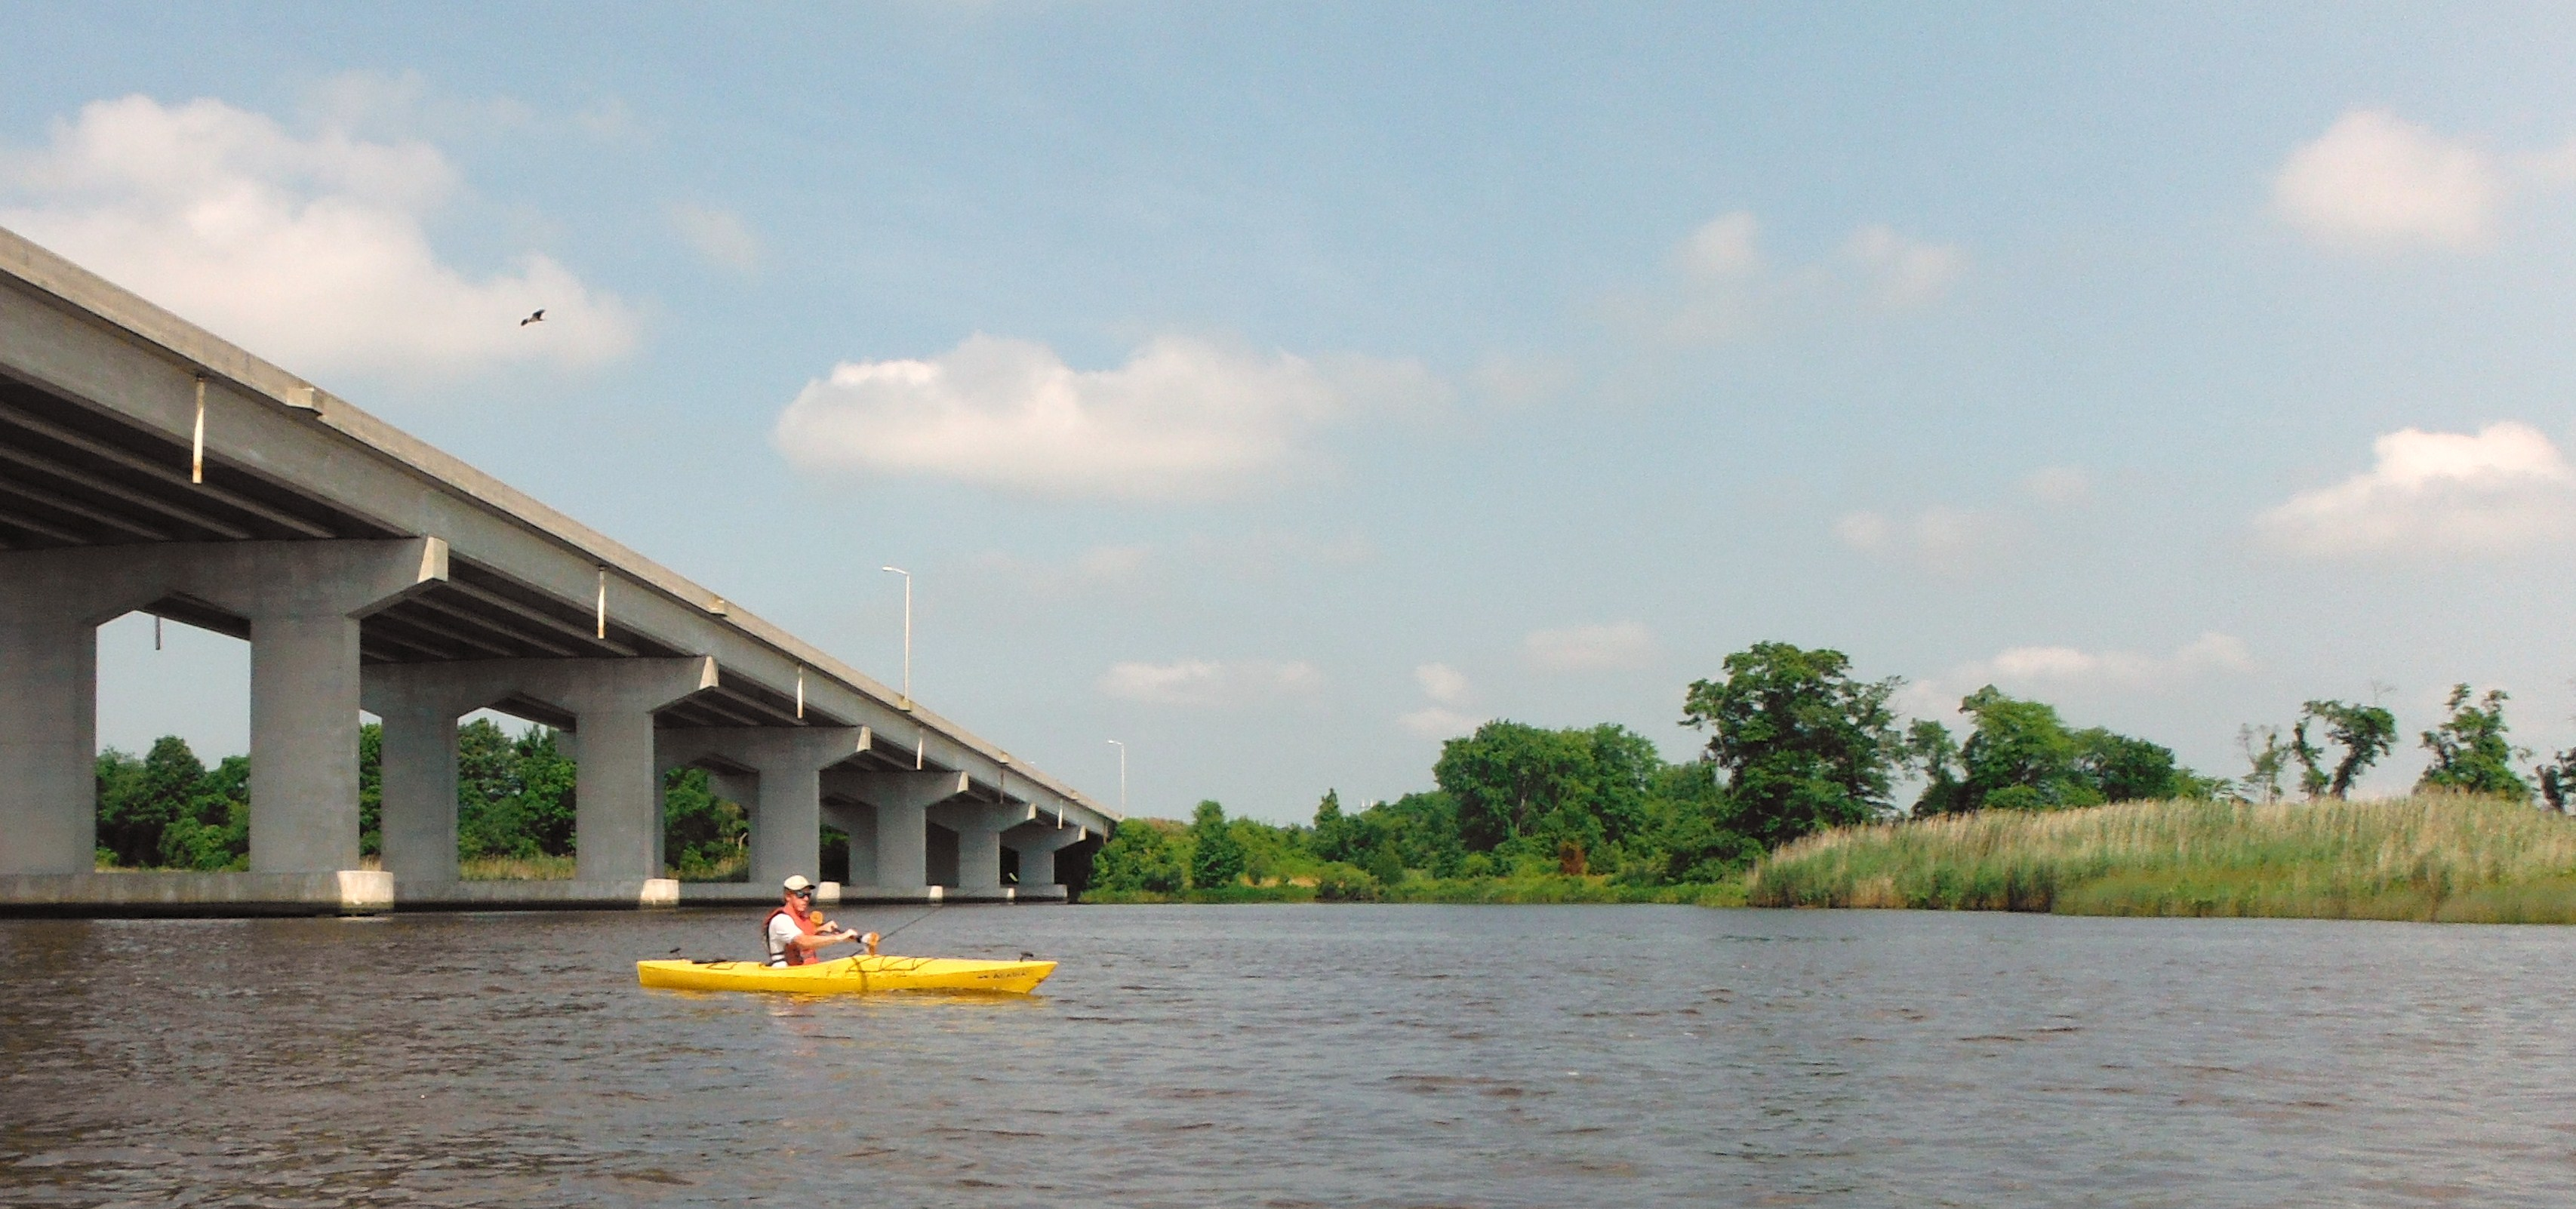 Kayaking under the Rt. 50 bridge outside of Vienna, MD.